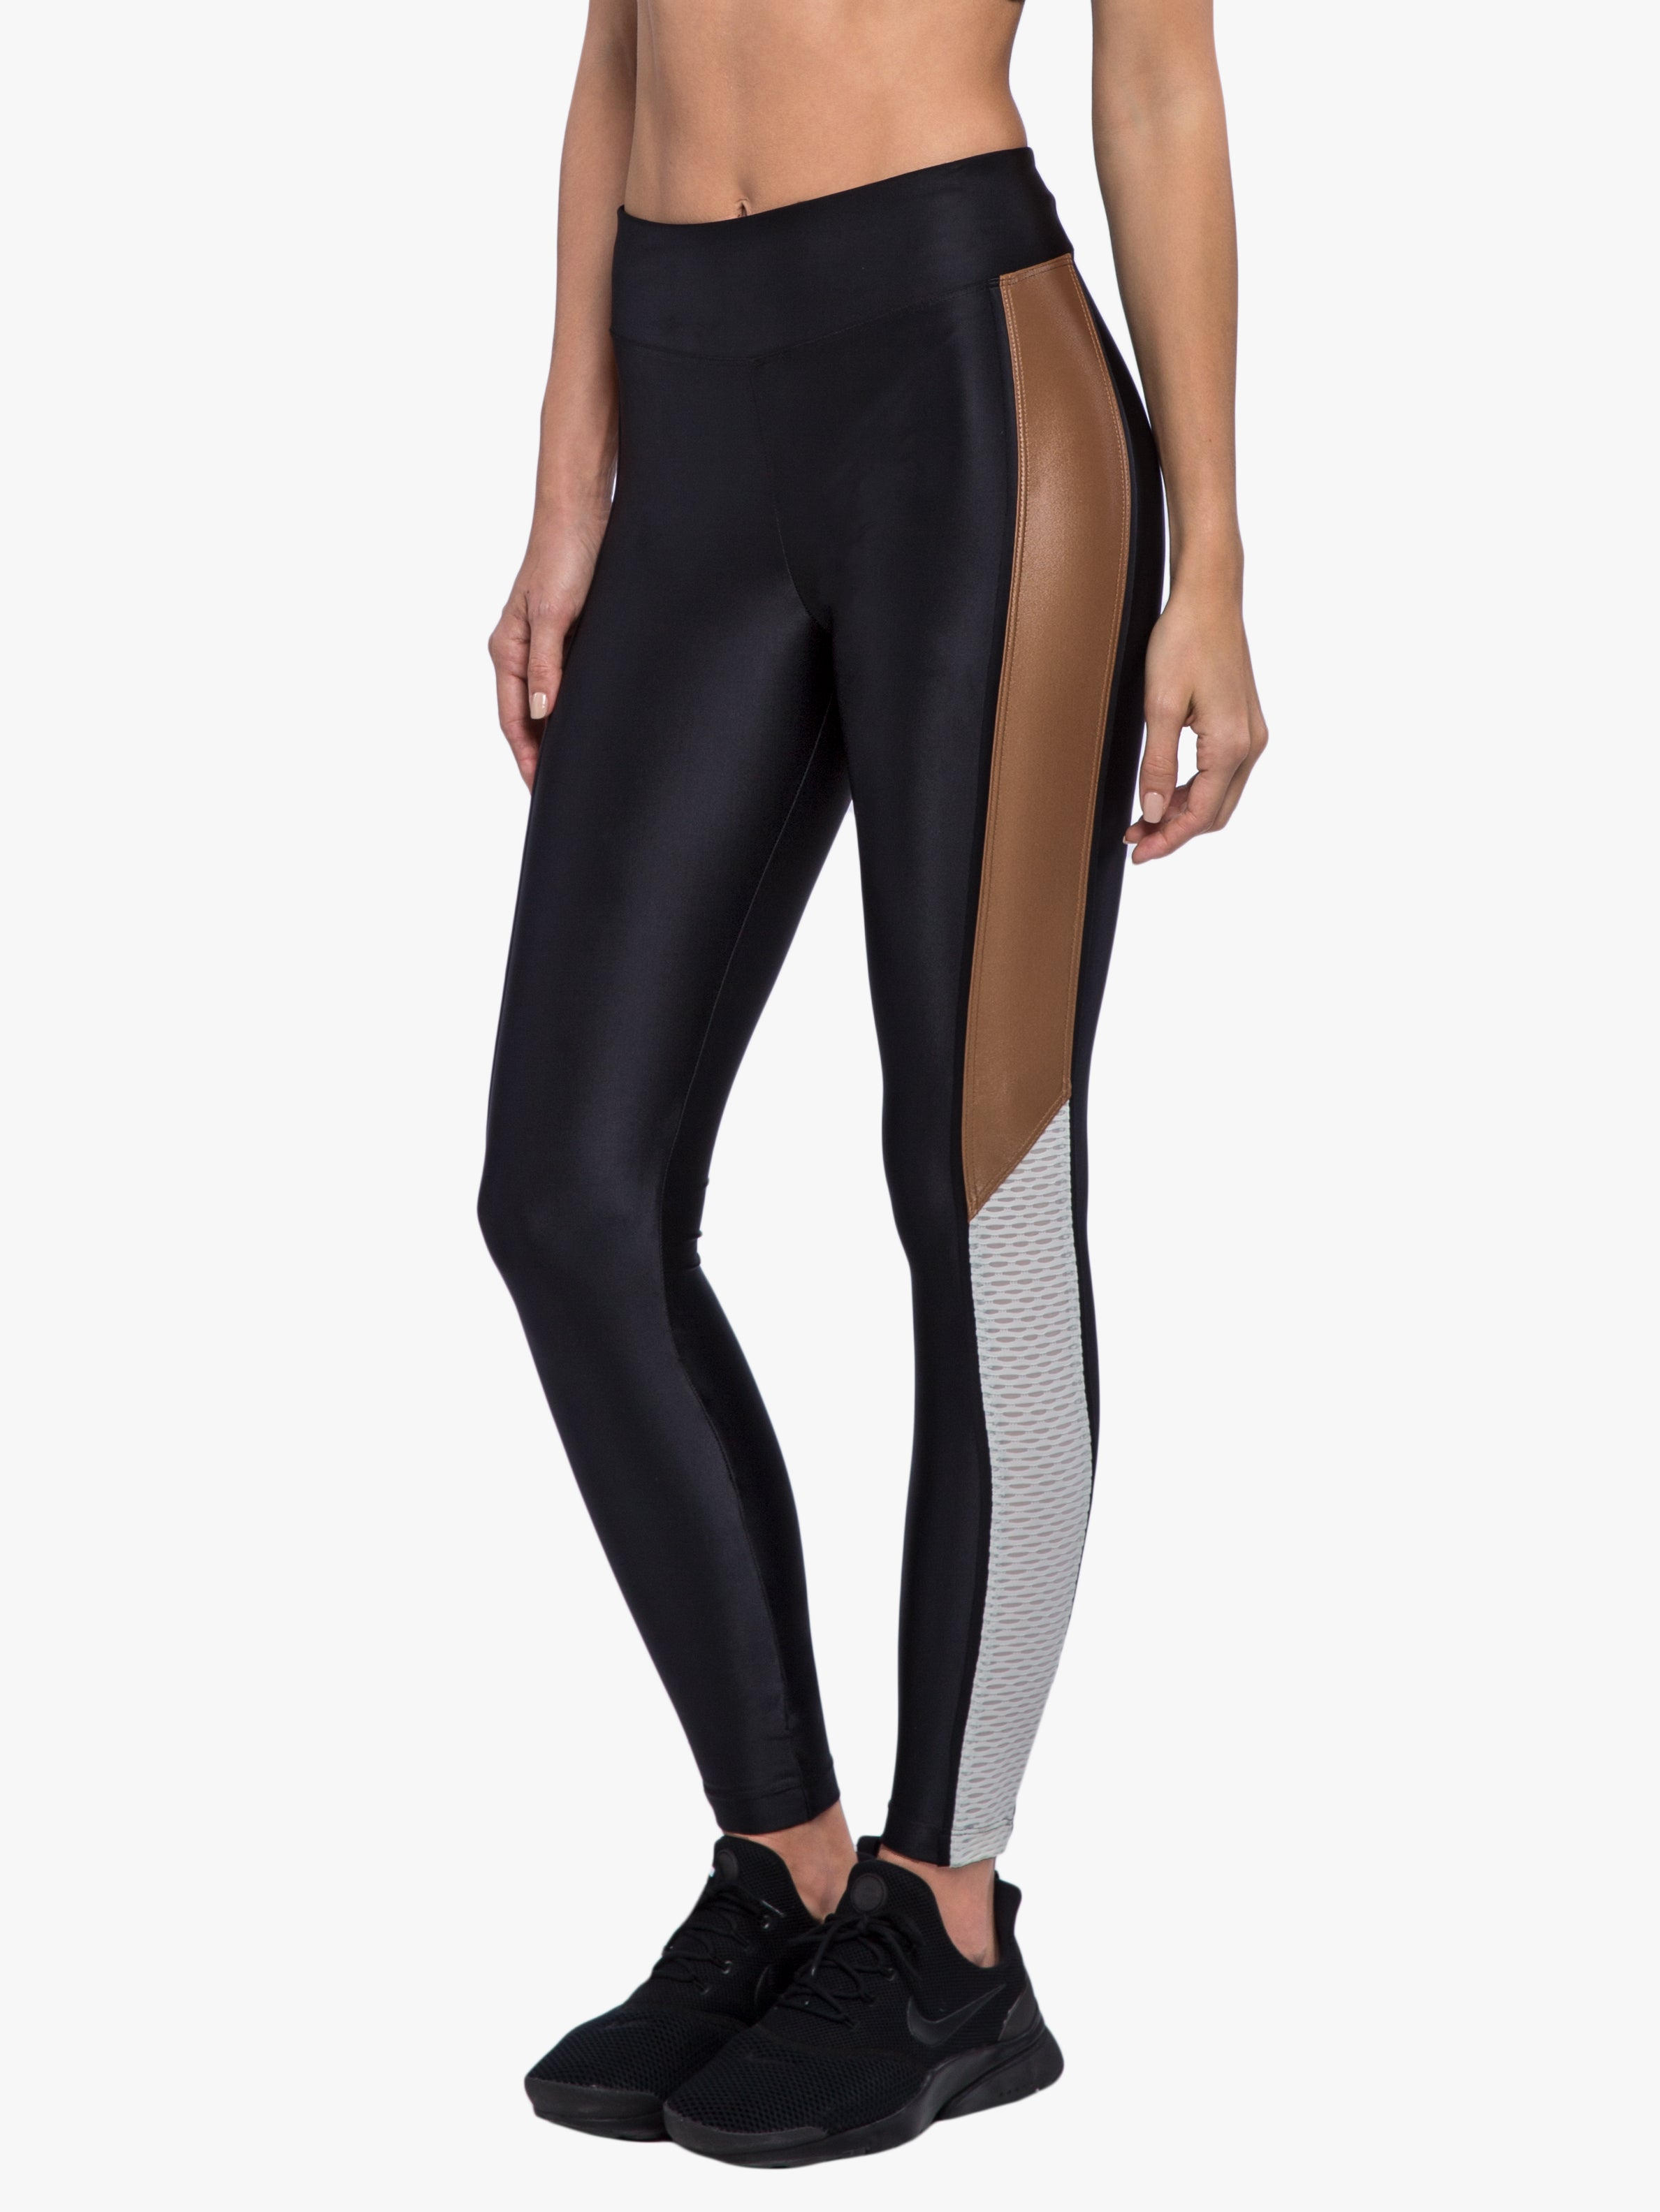 Serendipity Legging - Black/Toffee/Vanilla